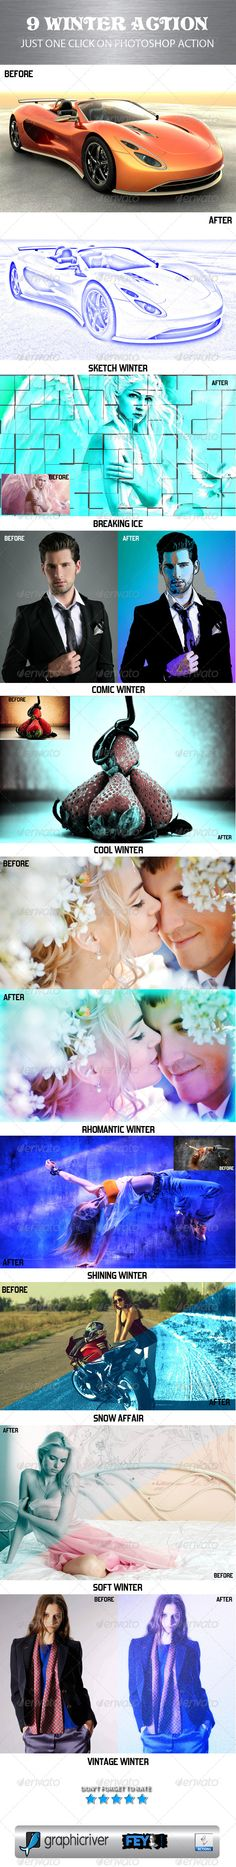 9 Winter Action  #GraphicRiver         9 Winter Action   9 Various Action 9 winter effects result.   Guide for using 9 Winter Action:   - Open 9 ATN files 9 Winter Action   - Open your image for recommended image must be JPG and RGB color   for fully working the Action Result   - Click On Action what you need   - Finally finish…   If you like don't forget to rate and thank you      Created: 10September13 Add-onFilesIncluded: PhotoshopATN MinimumAdobeCSVersion: CS Tags: action #atn…